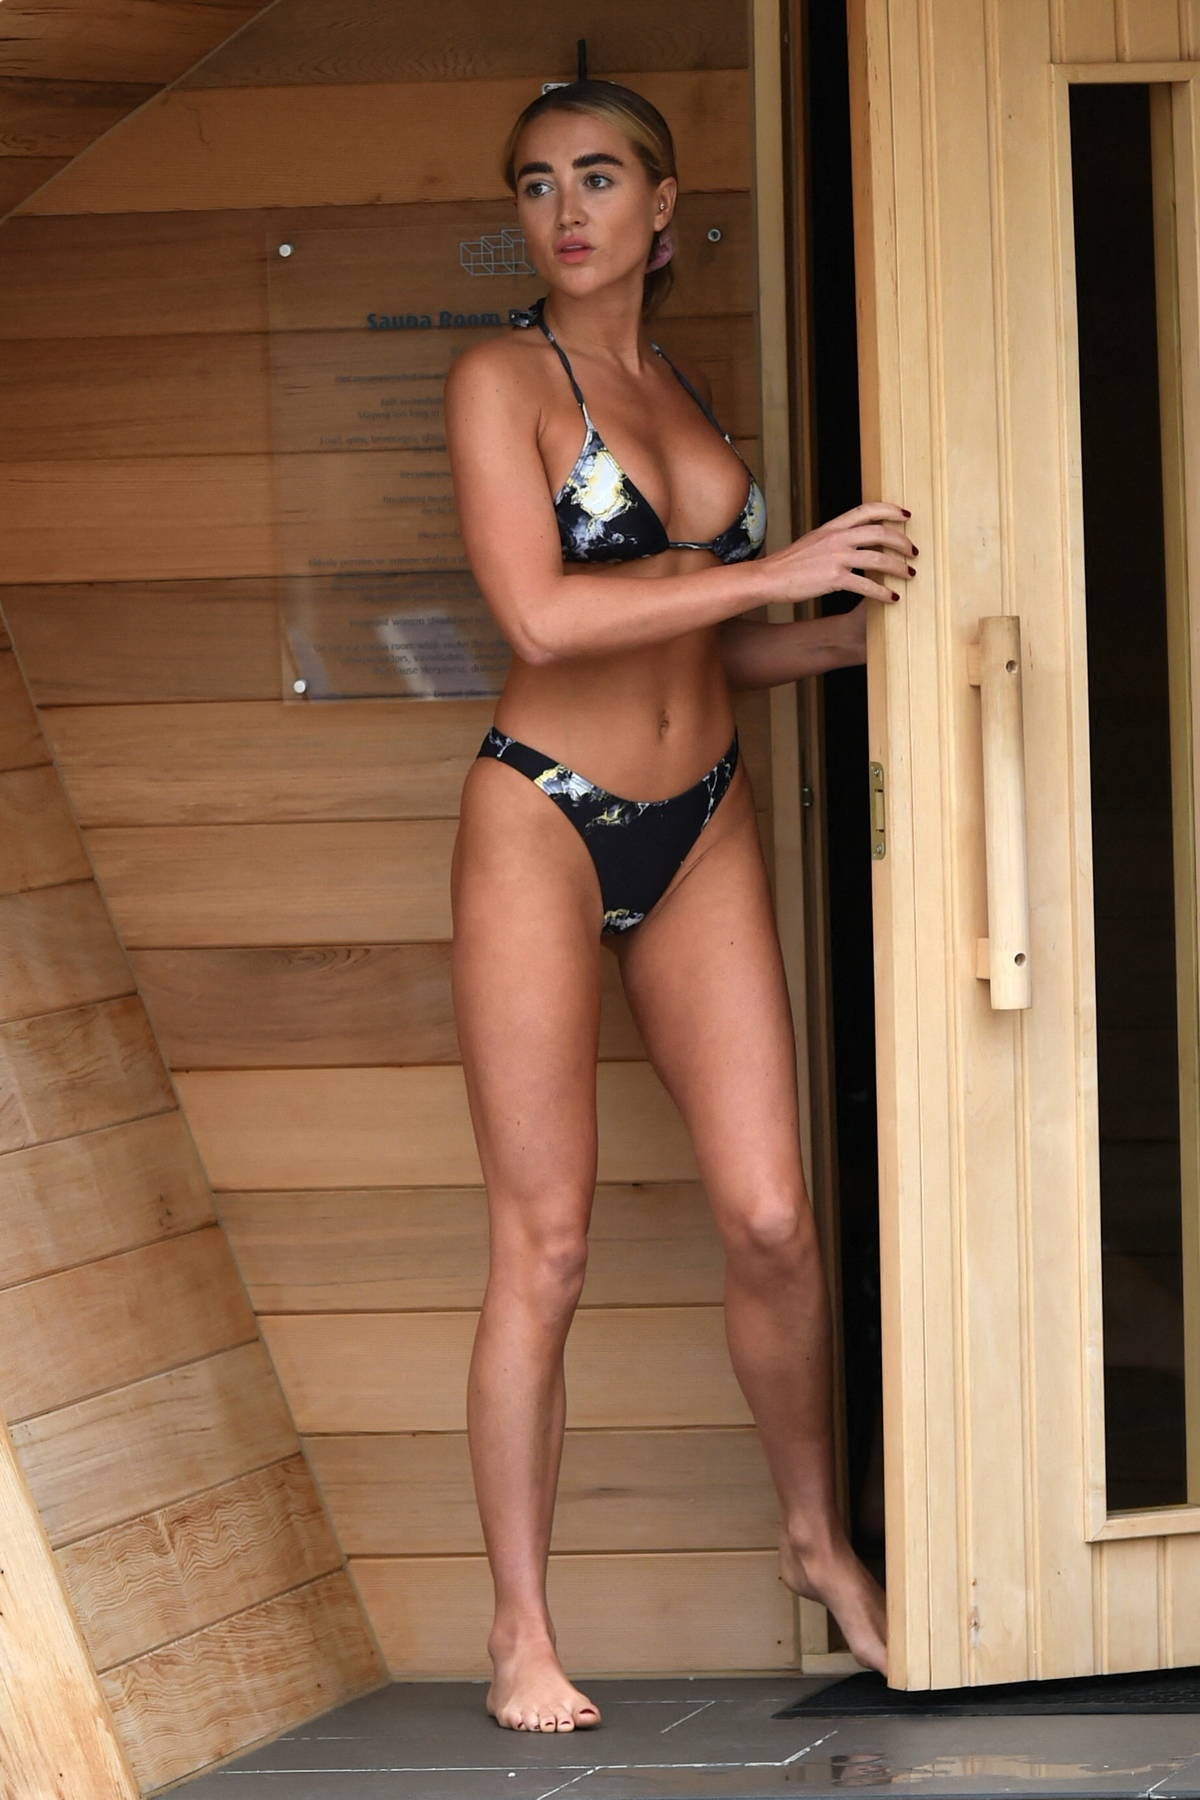 Georgia Harrison spotted in a bikini while enjoying a relaxing day at the Glass House retreat in Essex, UK